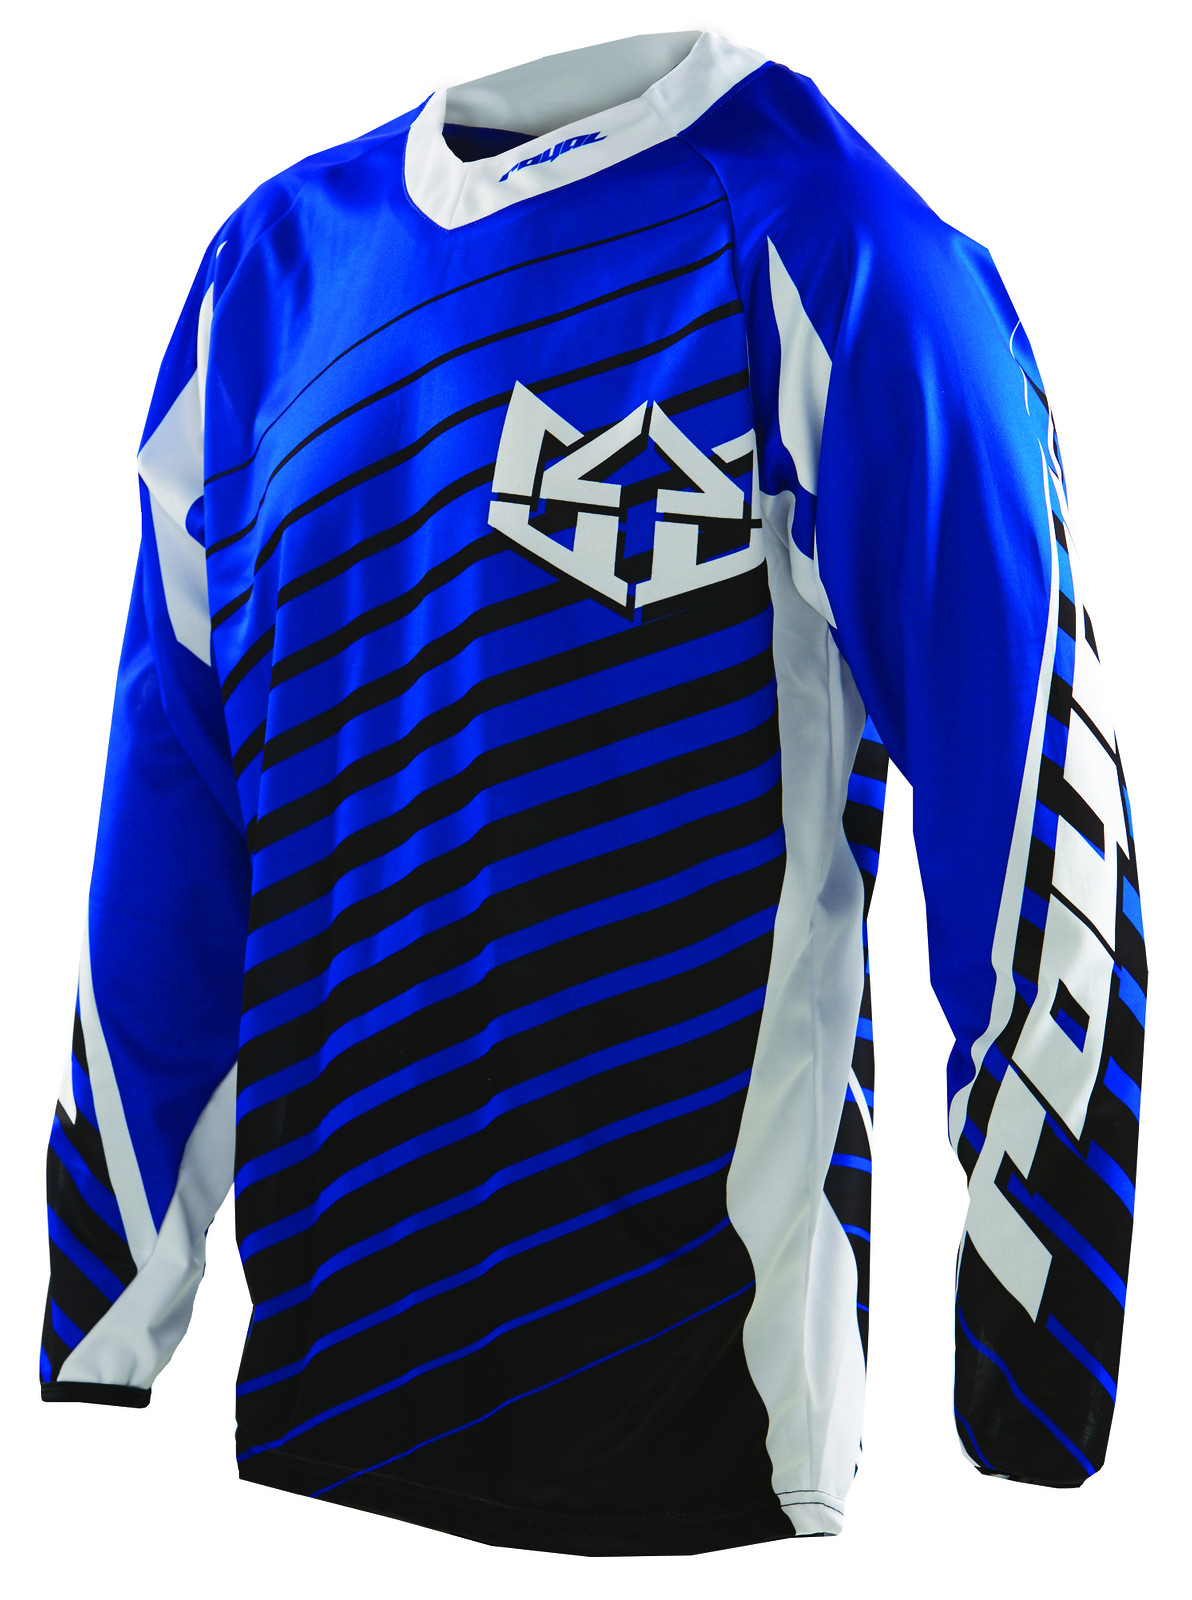 Royal 2014 SP-247 Jersey sp247 blue f